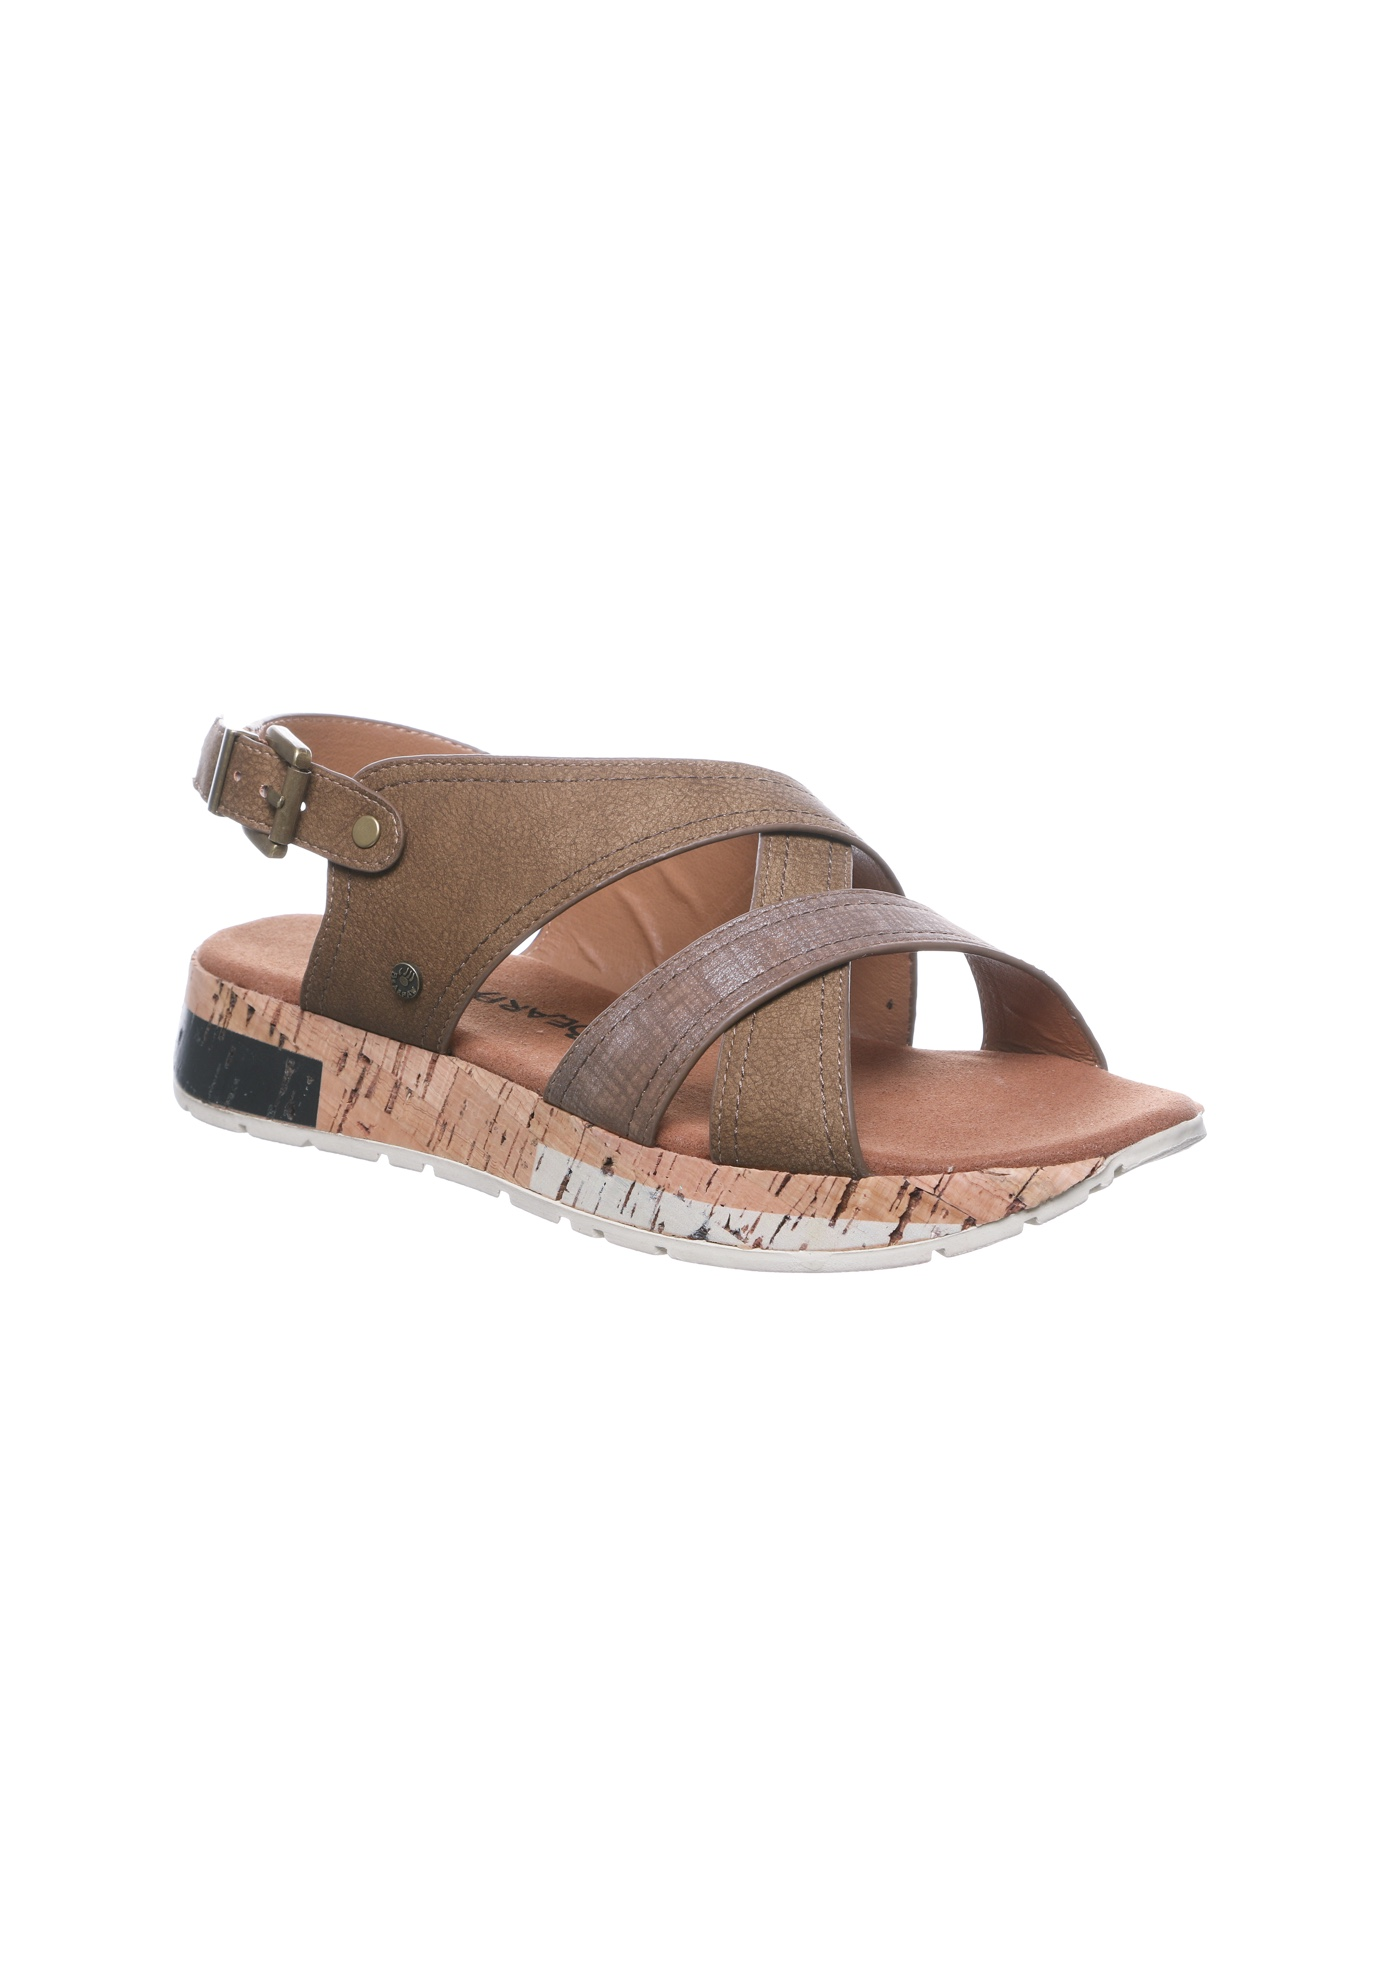 Shelly Sandals by Bearpaw,